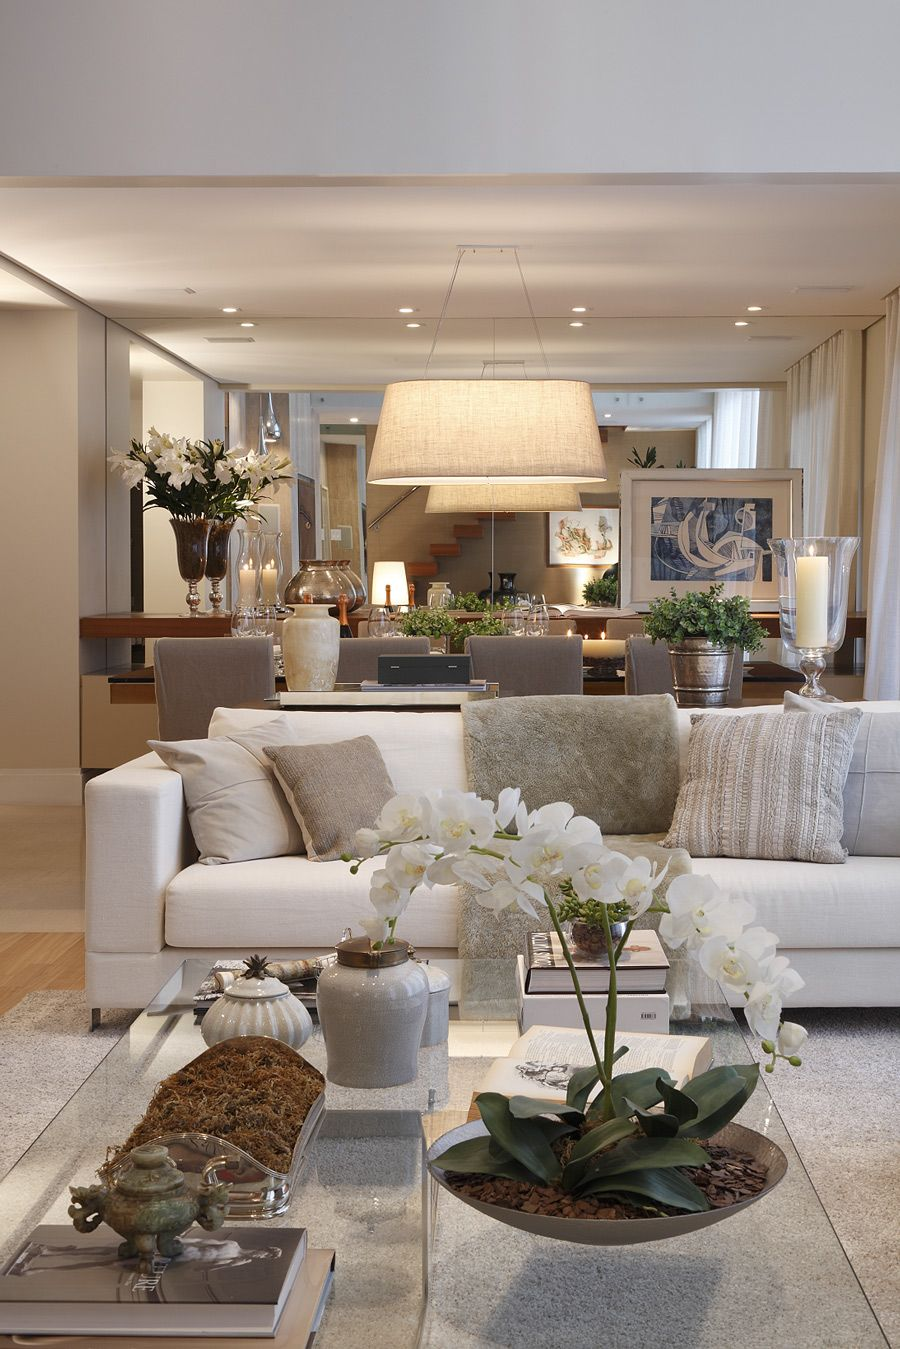 35 Super stylish and inspiring neutral living room designs | My Home ...